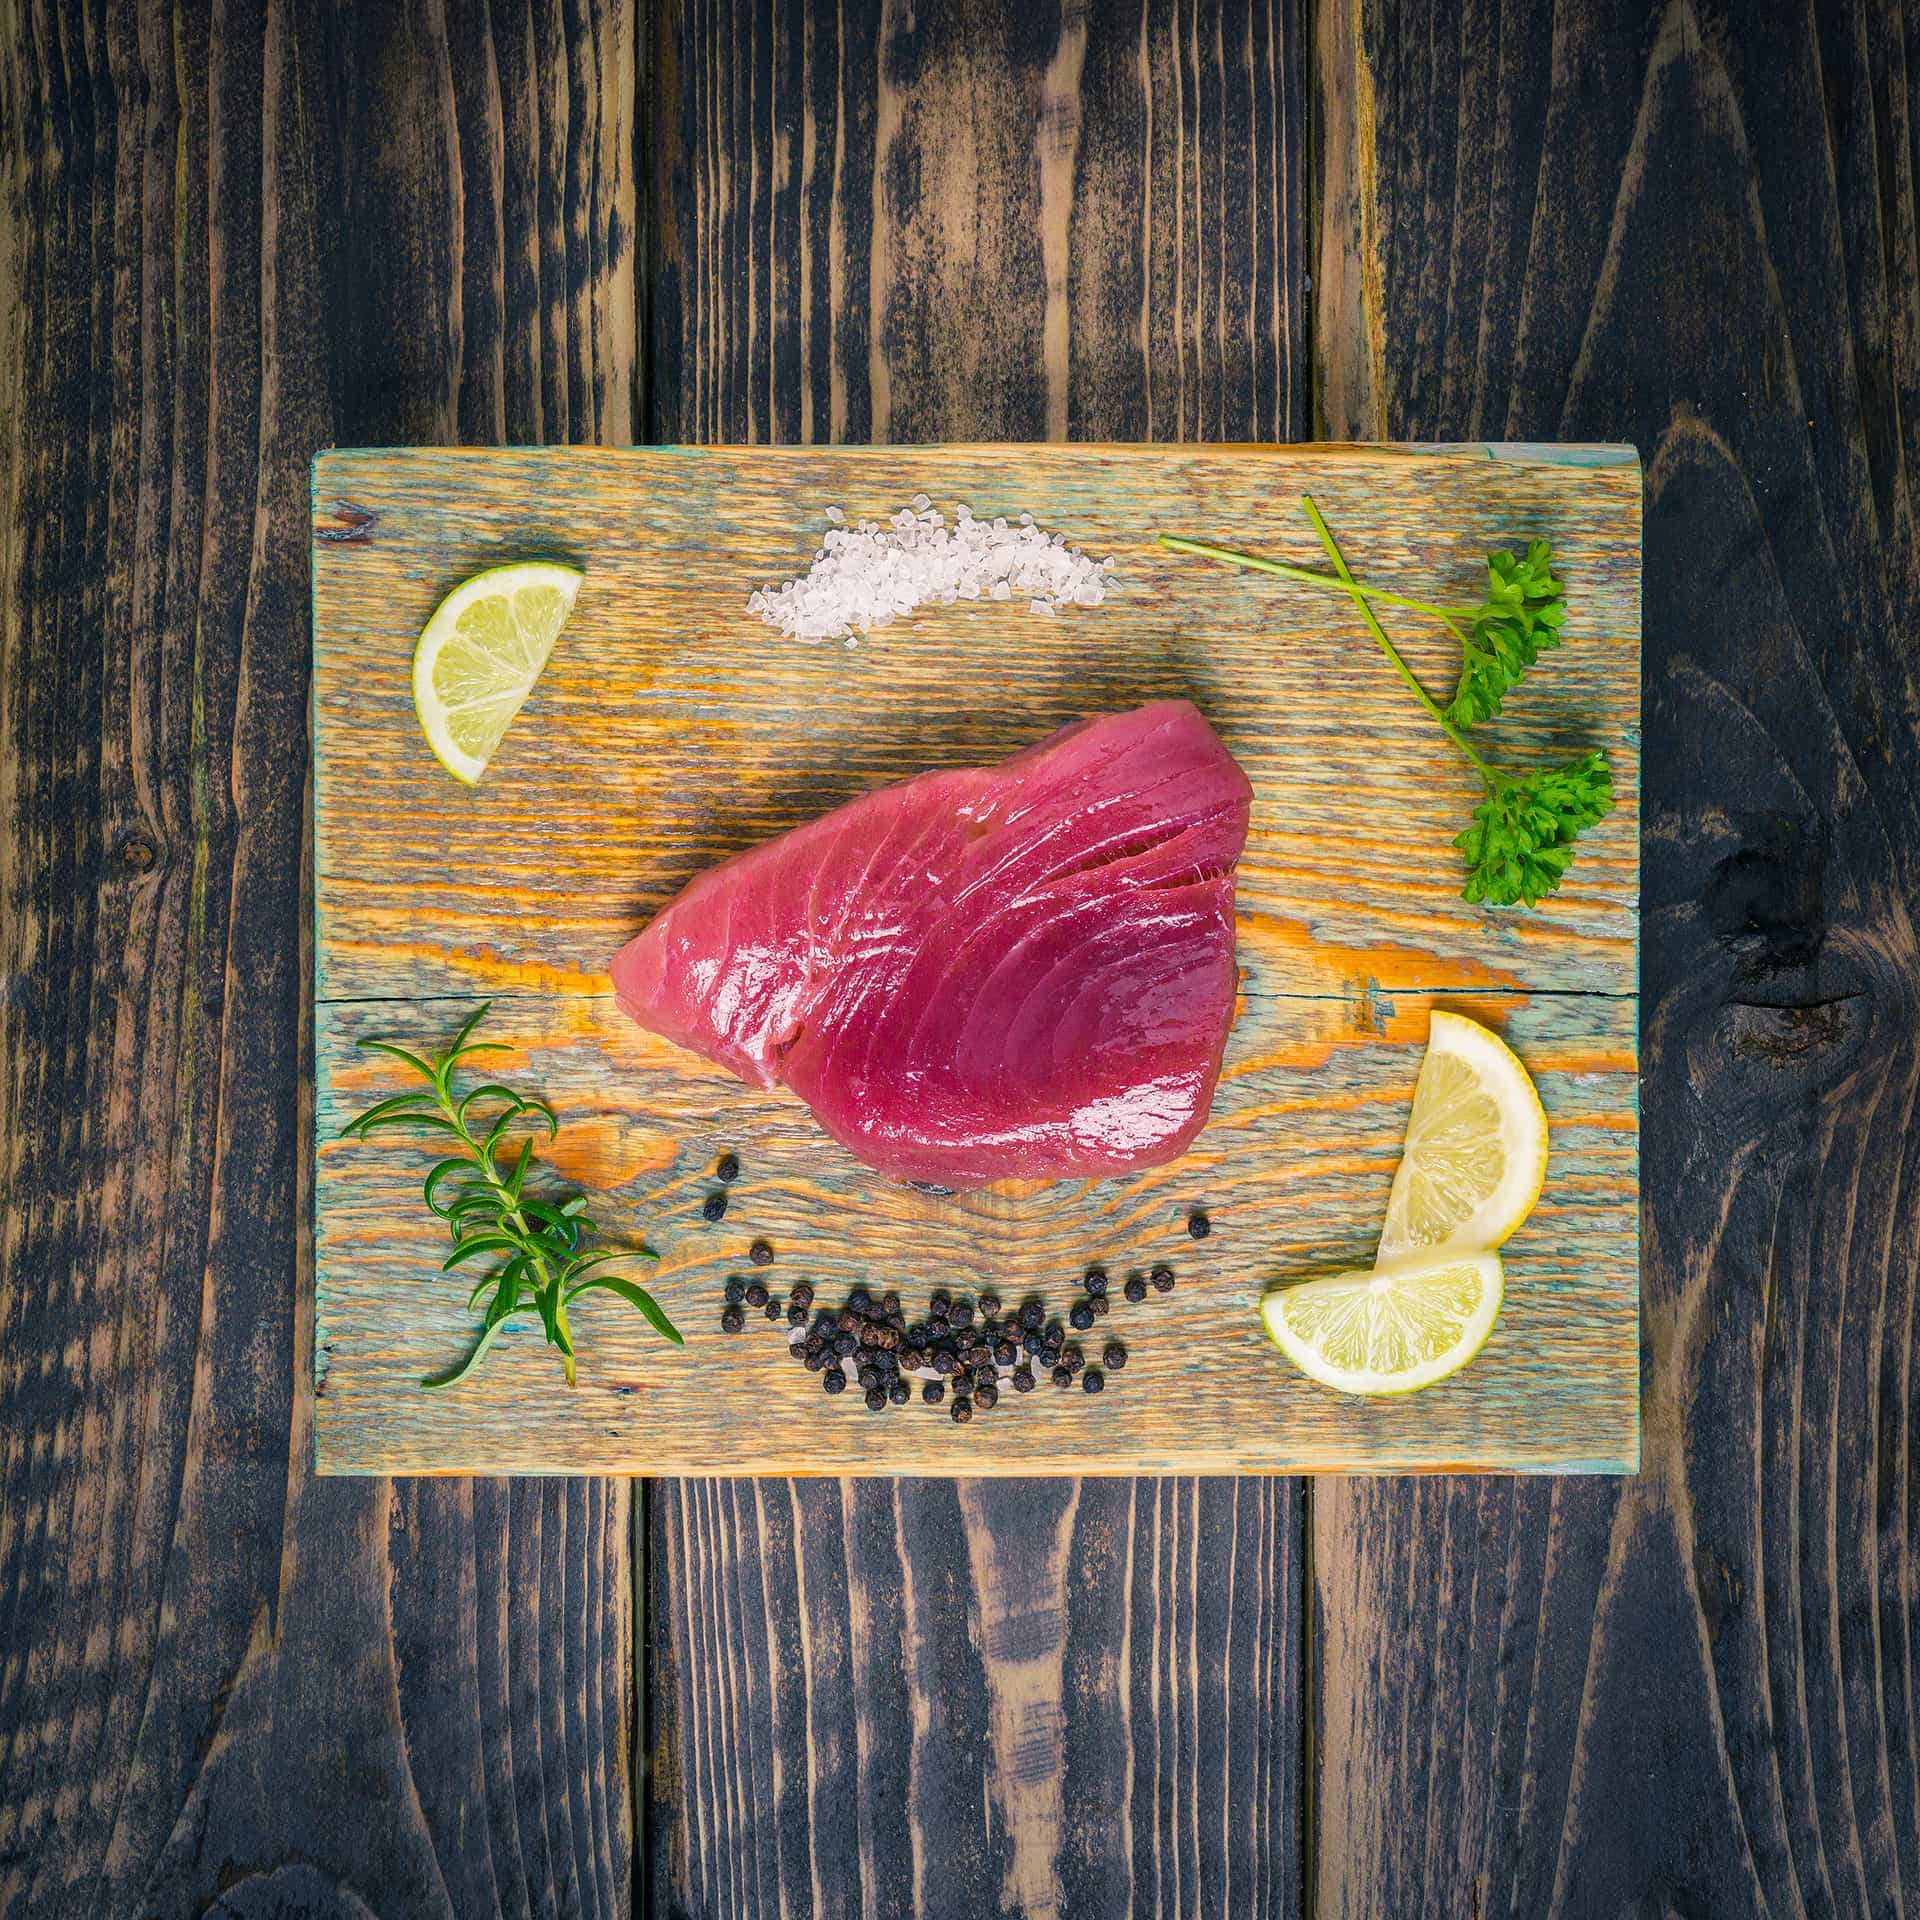 Tuna steak on a chopping board